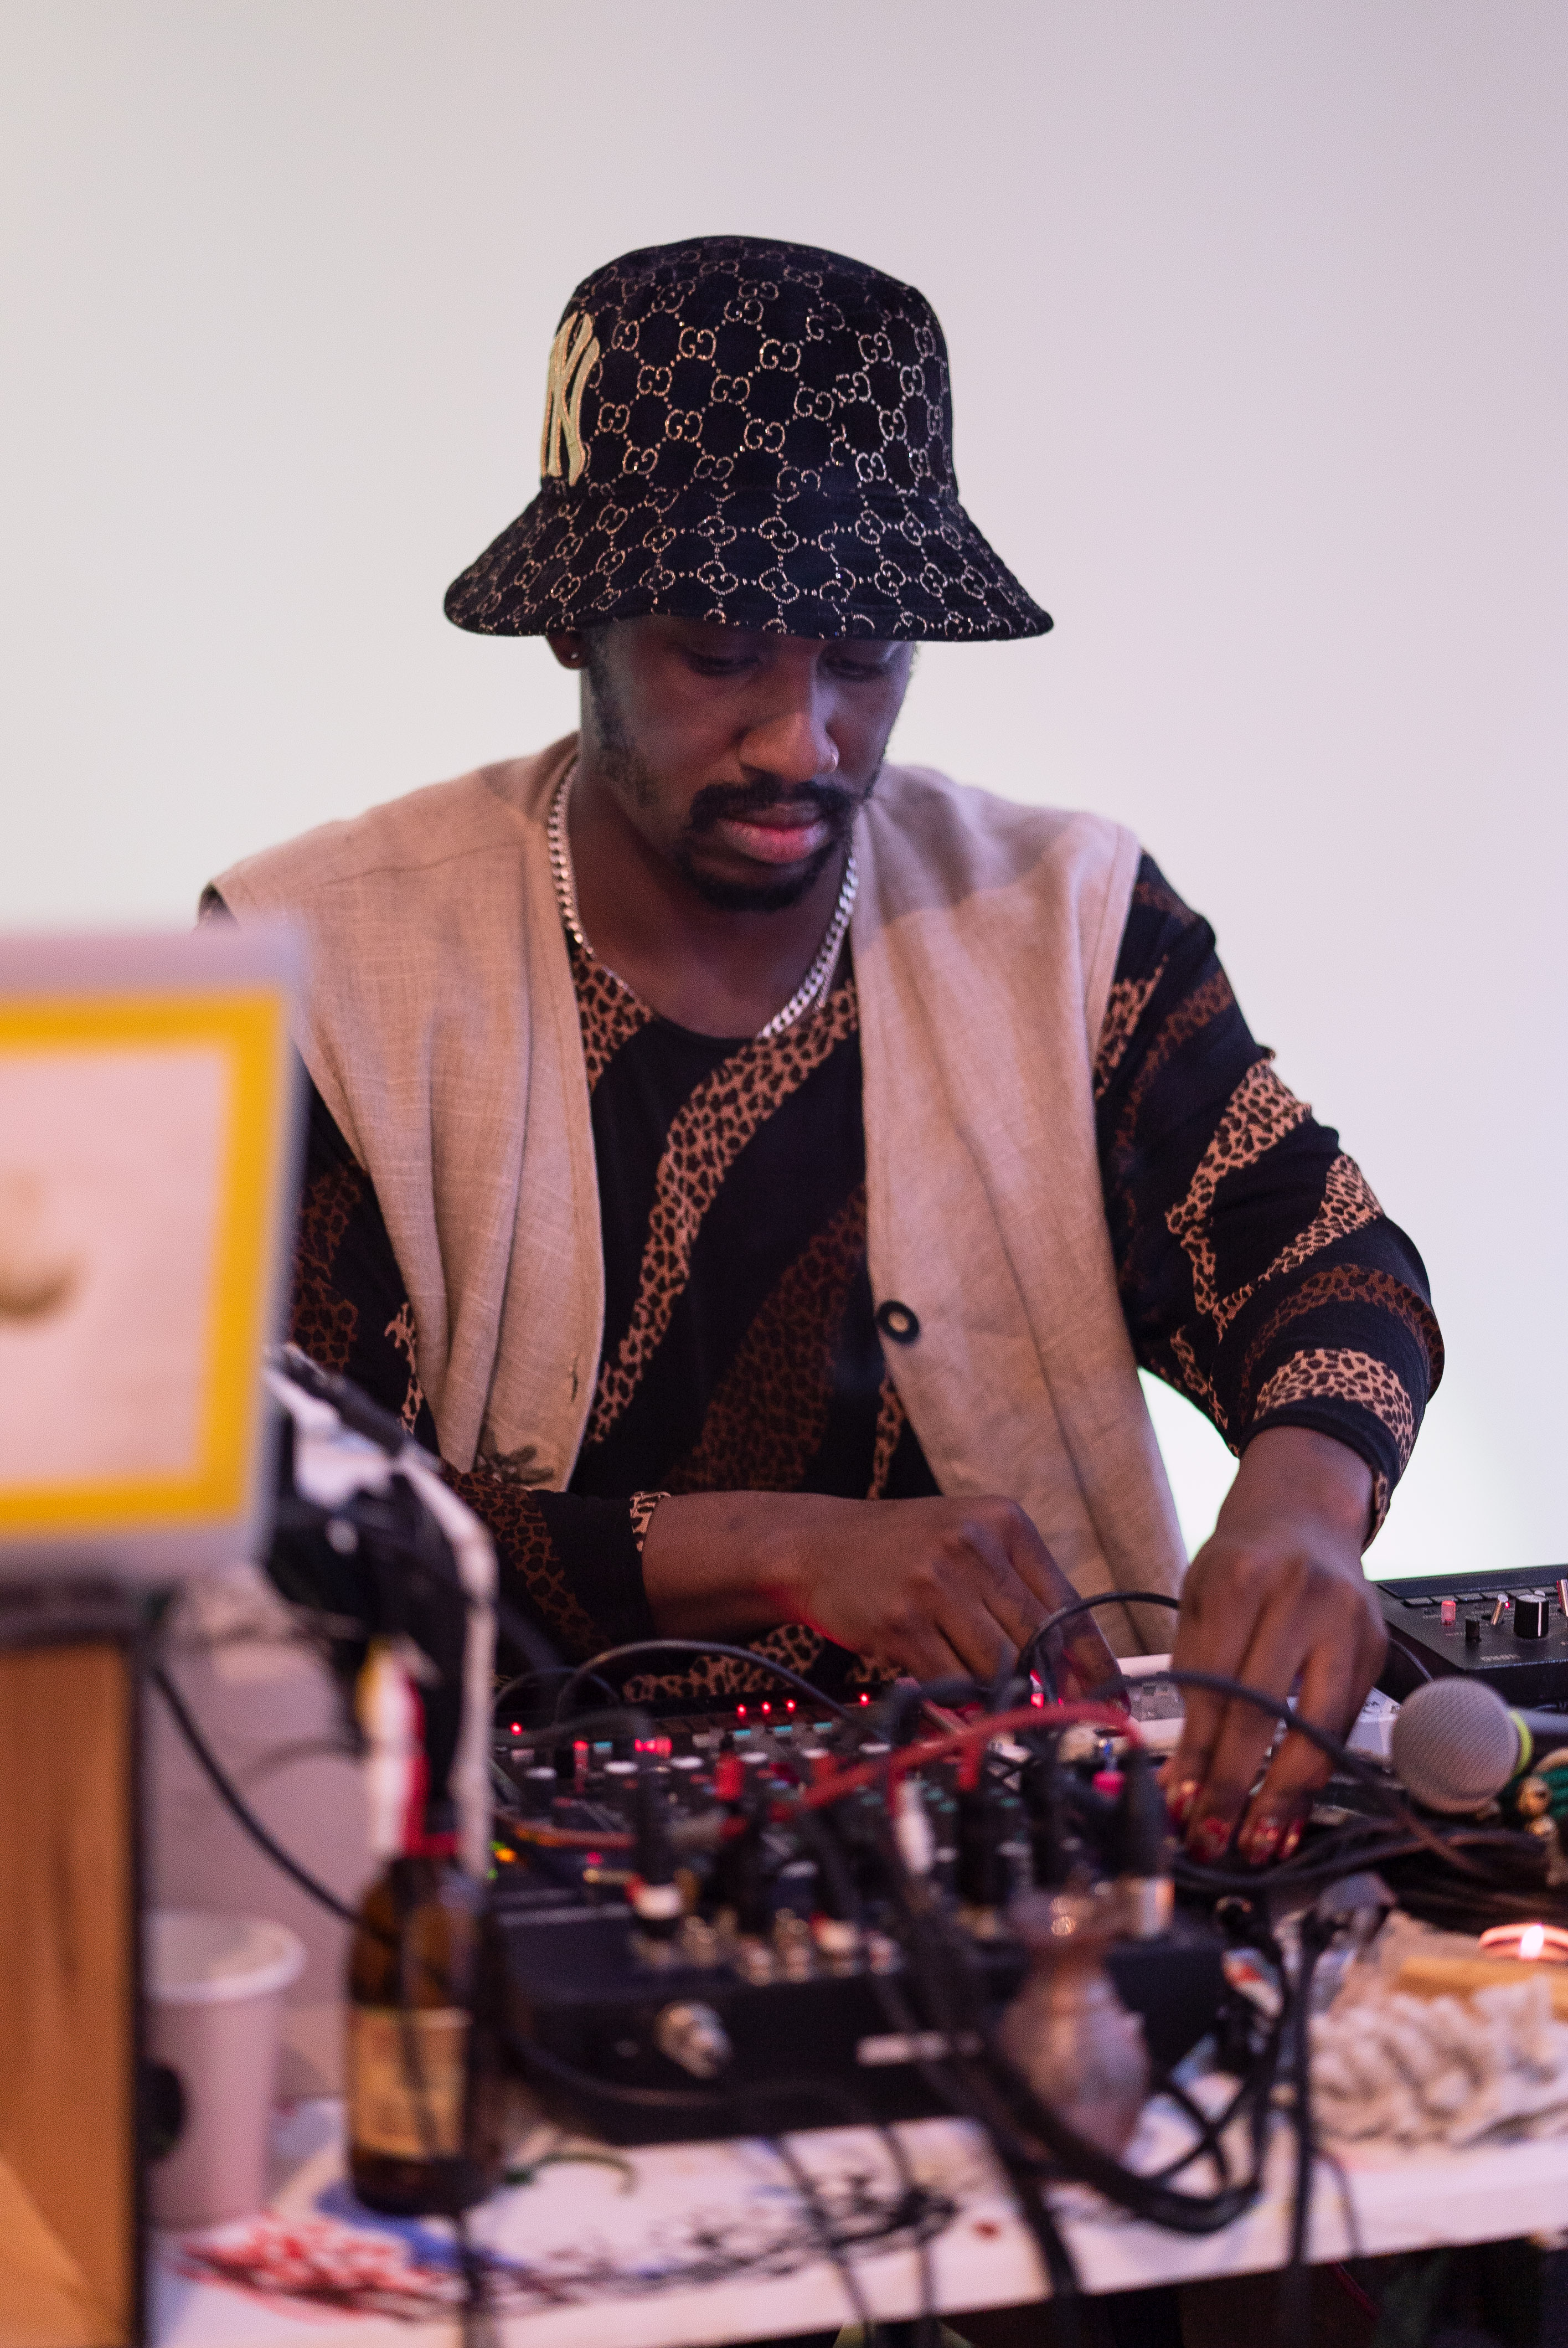 The photo is a medium shot of a person from the front sitting at a DJ table. They are wearing a hat and a traditional vest. In the foreground and out of focus we see equipment, cables and a microphone. The person operates equipment for DJing.